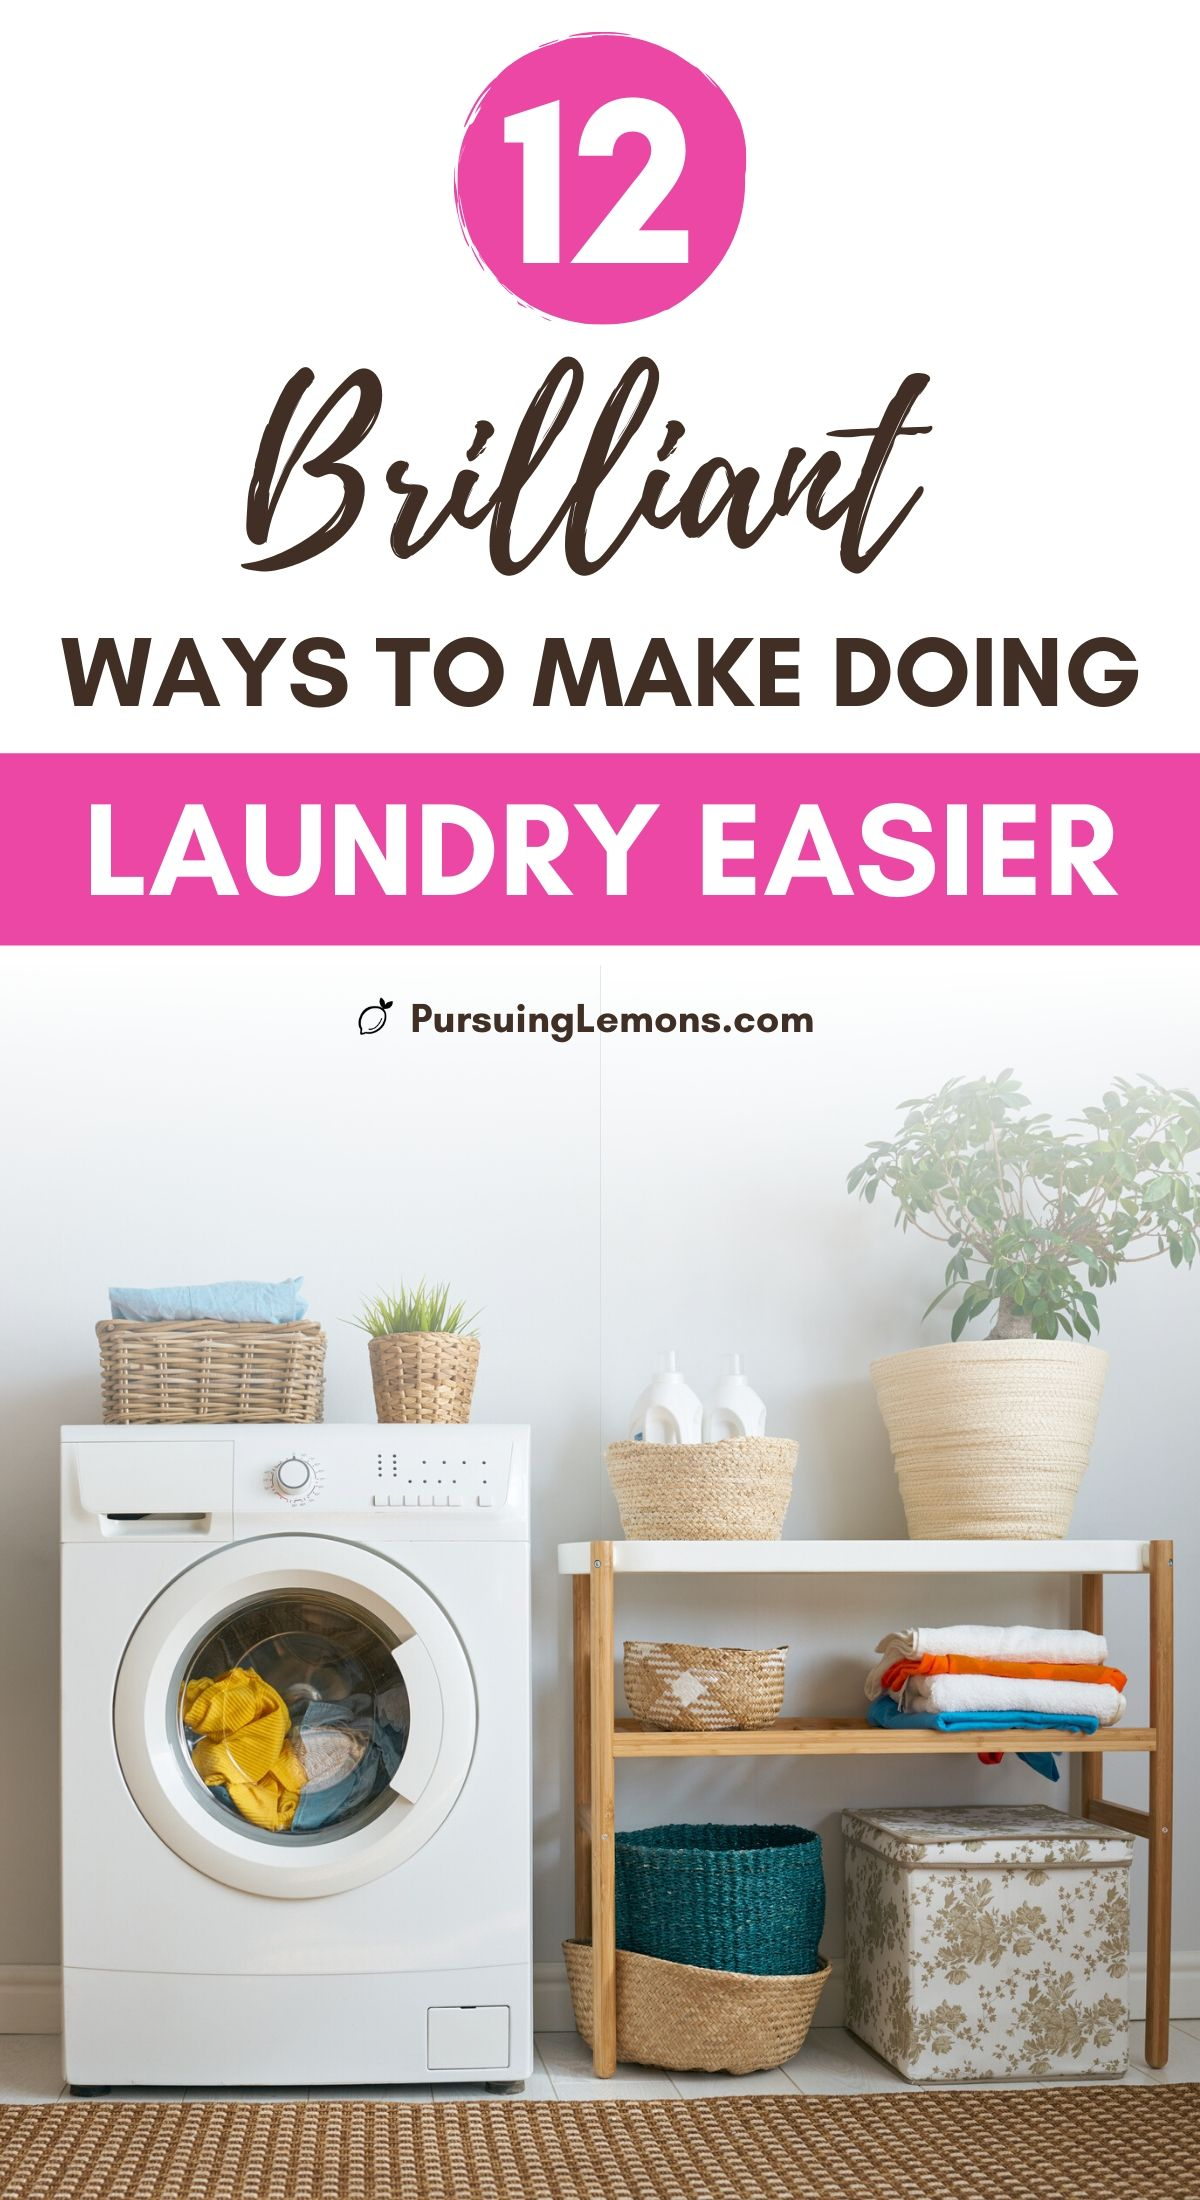 12 Laundry Room Hacks That Will Make Your Life So Much Easier | These laundry room ideas are going to make you love doing laundry again! With these laundry room tricks and laundry room organization ideas, doing laundry will be so much easier! #laundryhacks #laundryorganization